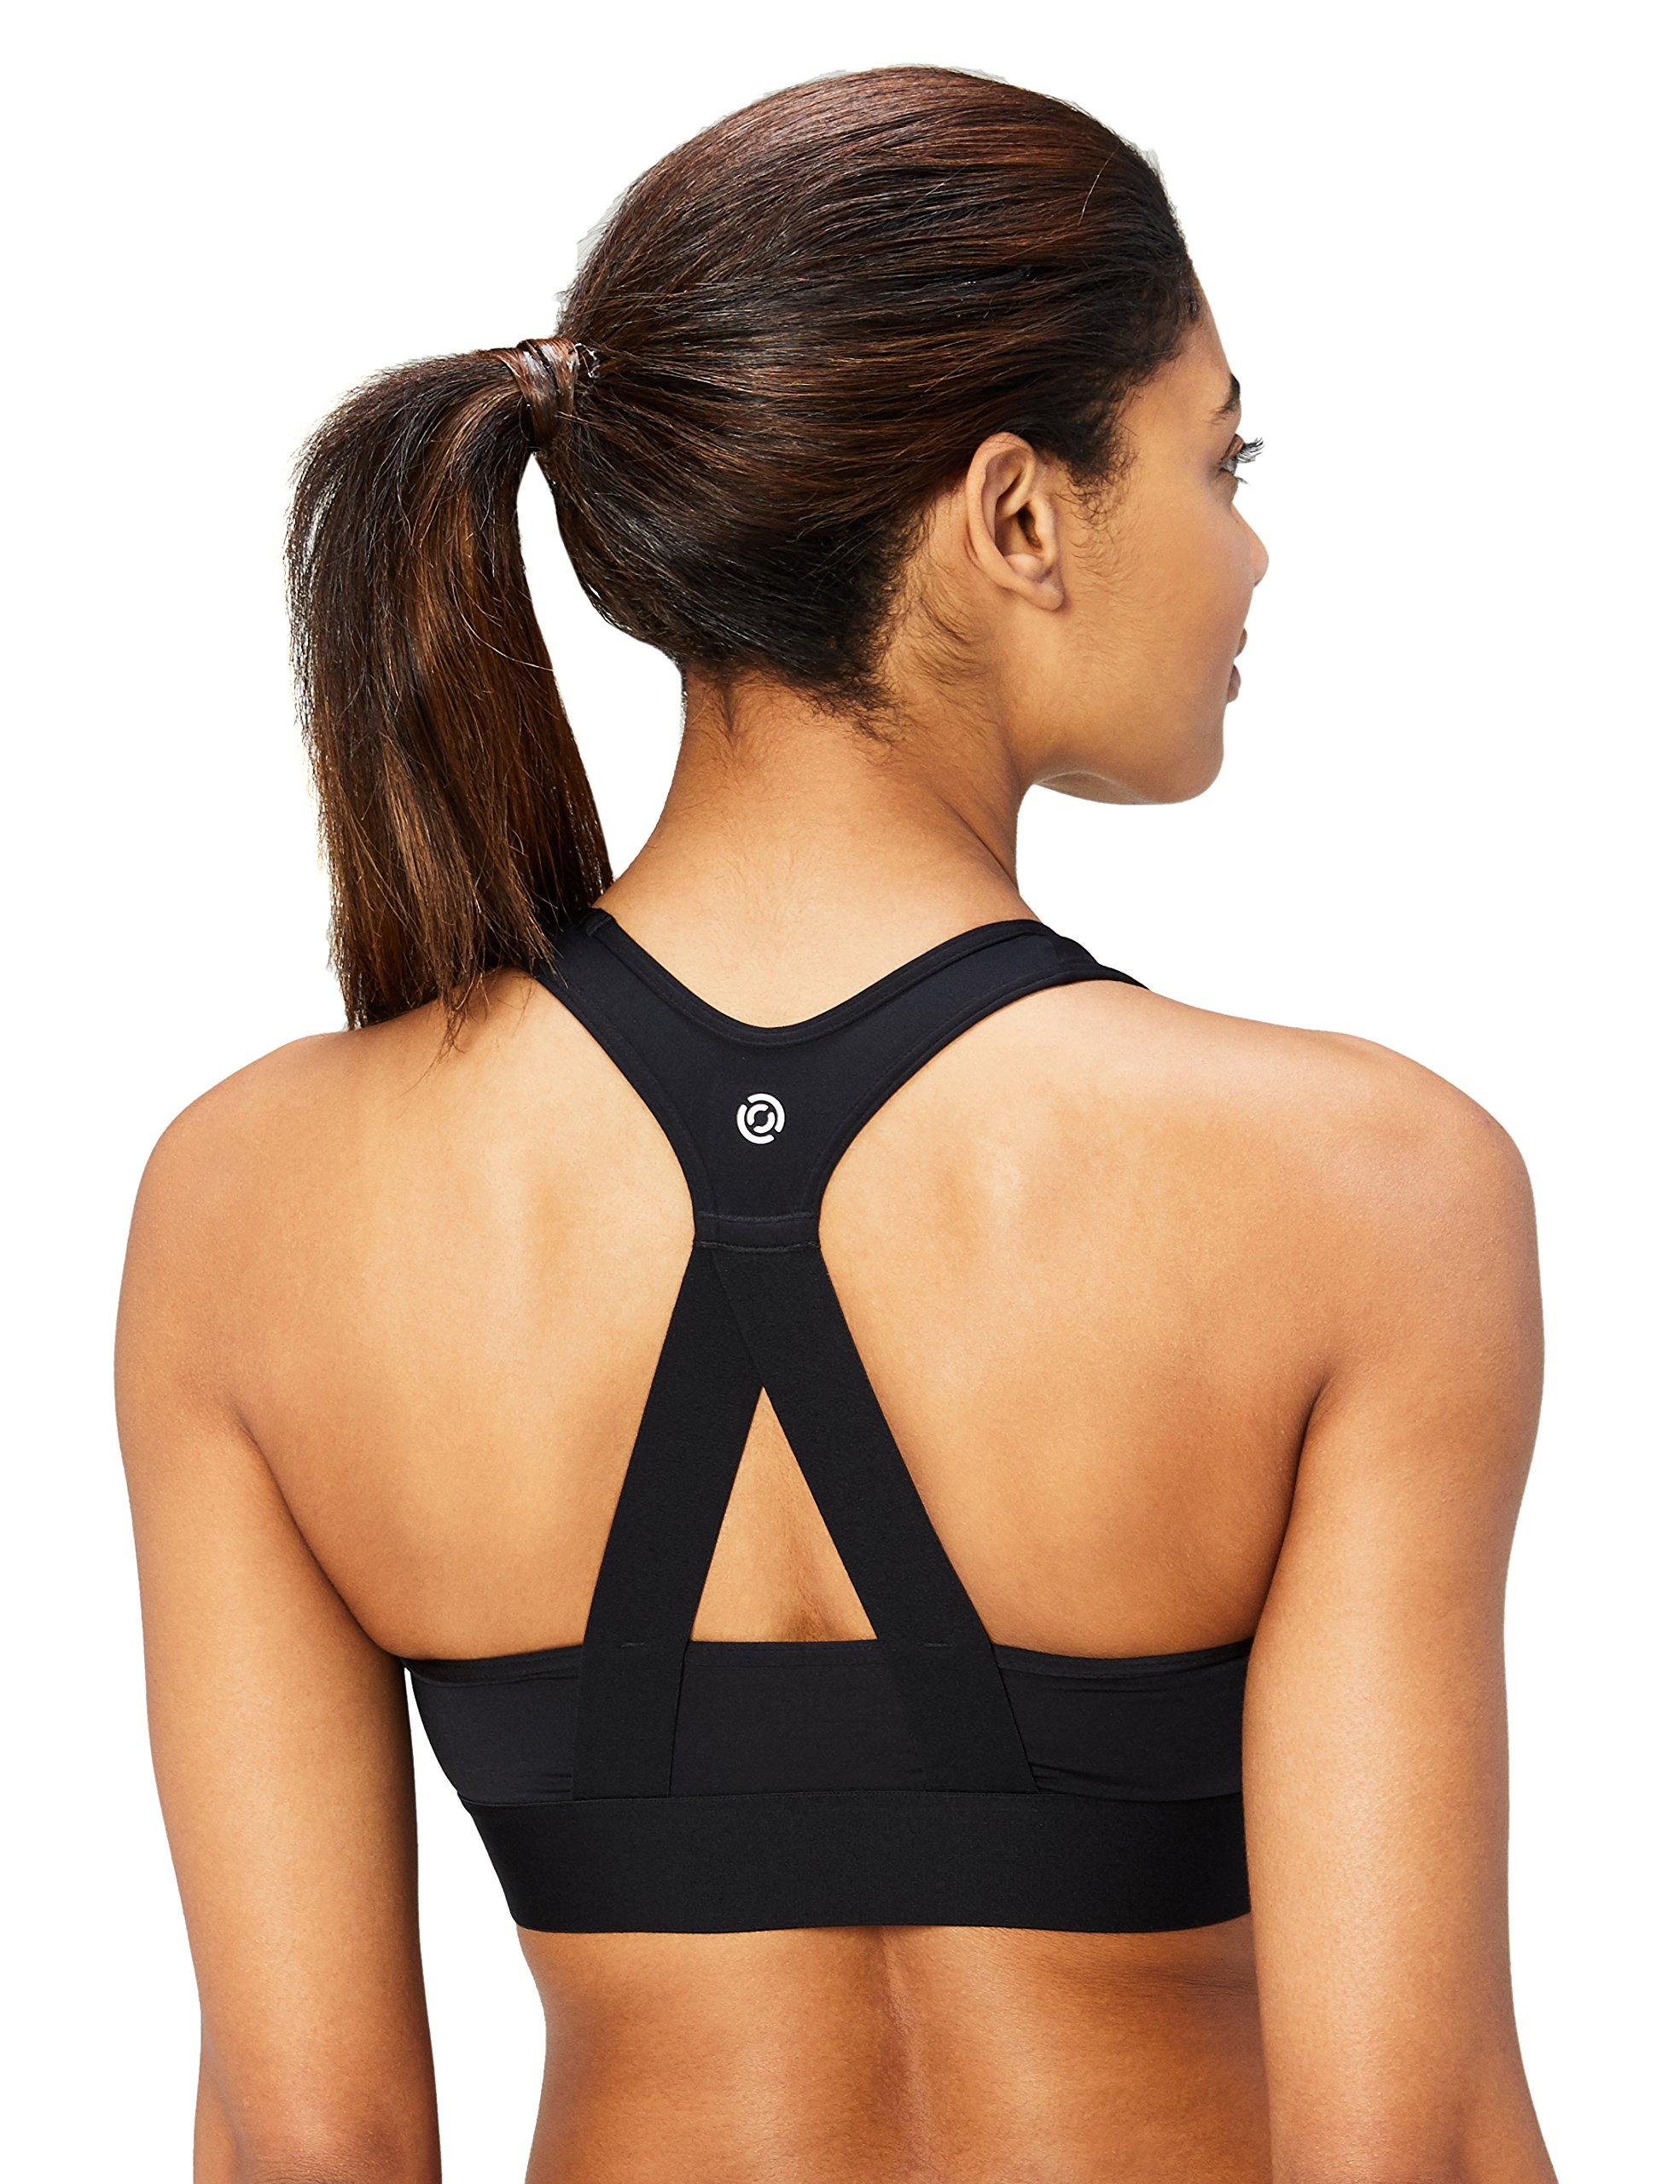 Amazon Brand - Core 10 Women's Cross Back Sports Bra with Removable cups, black, Small